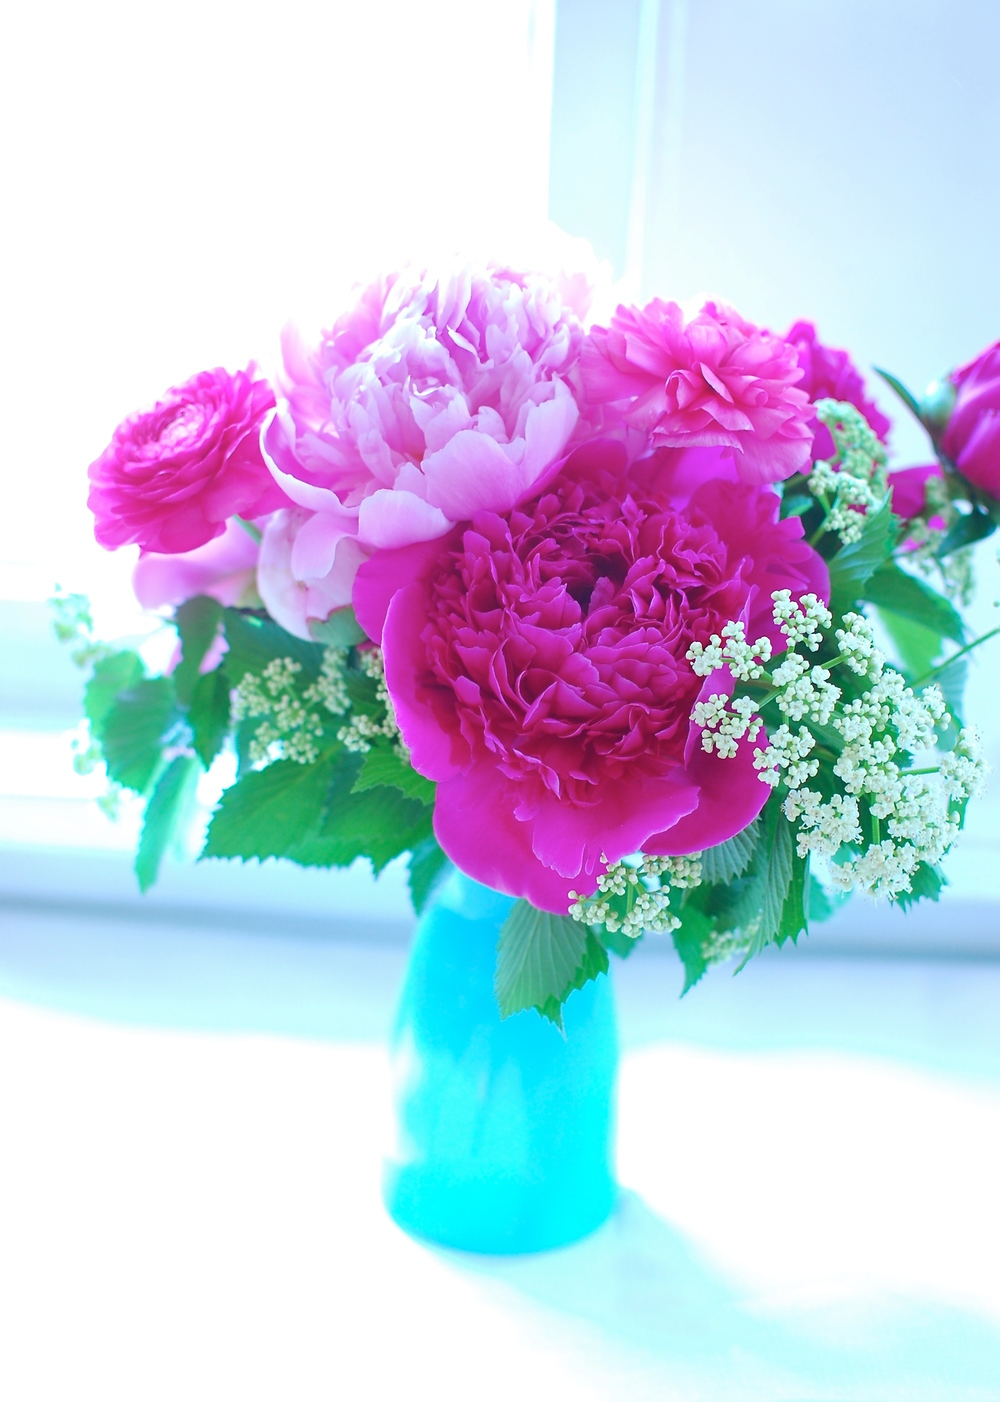 Peonies, ranunculus, and some greenery